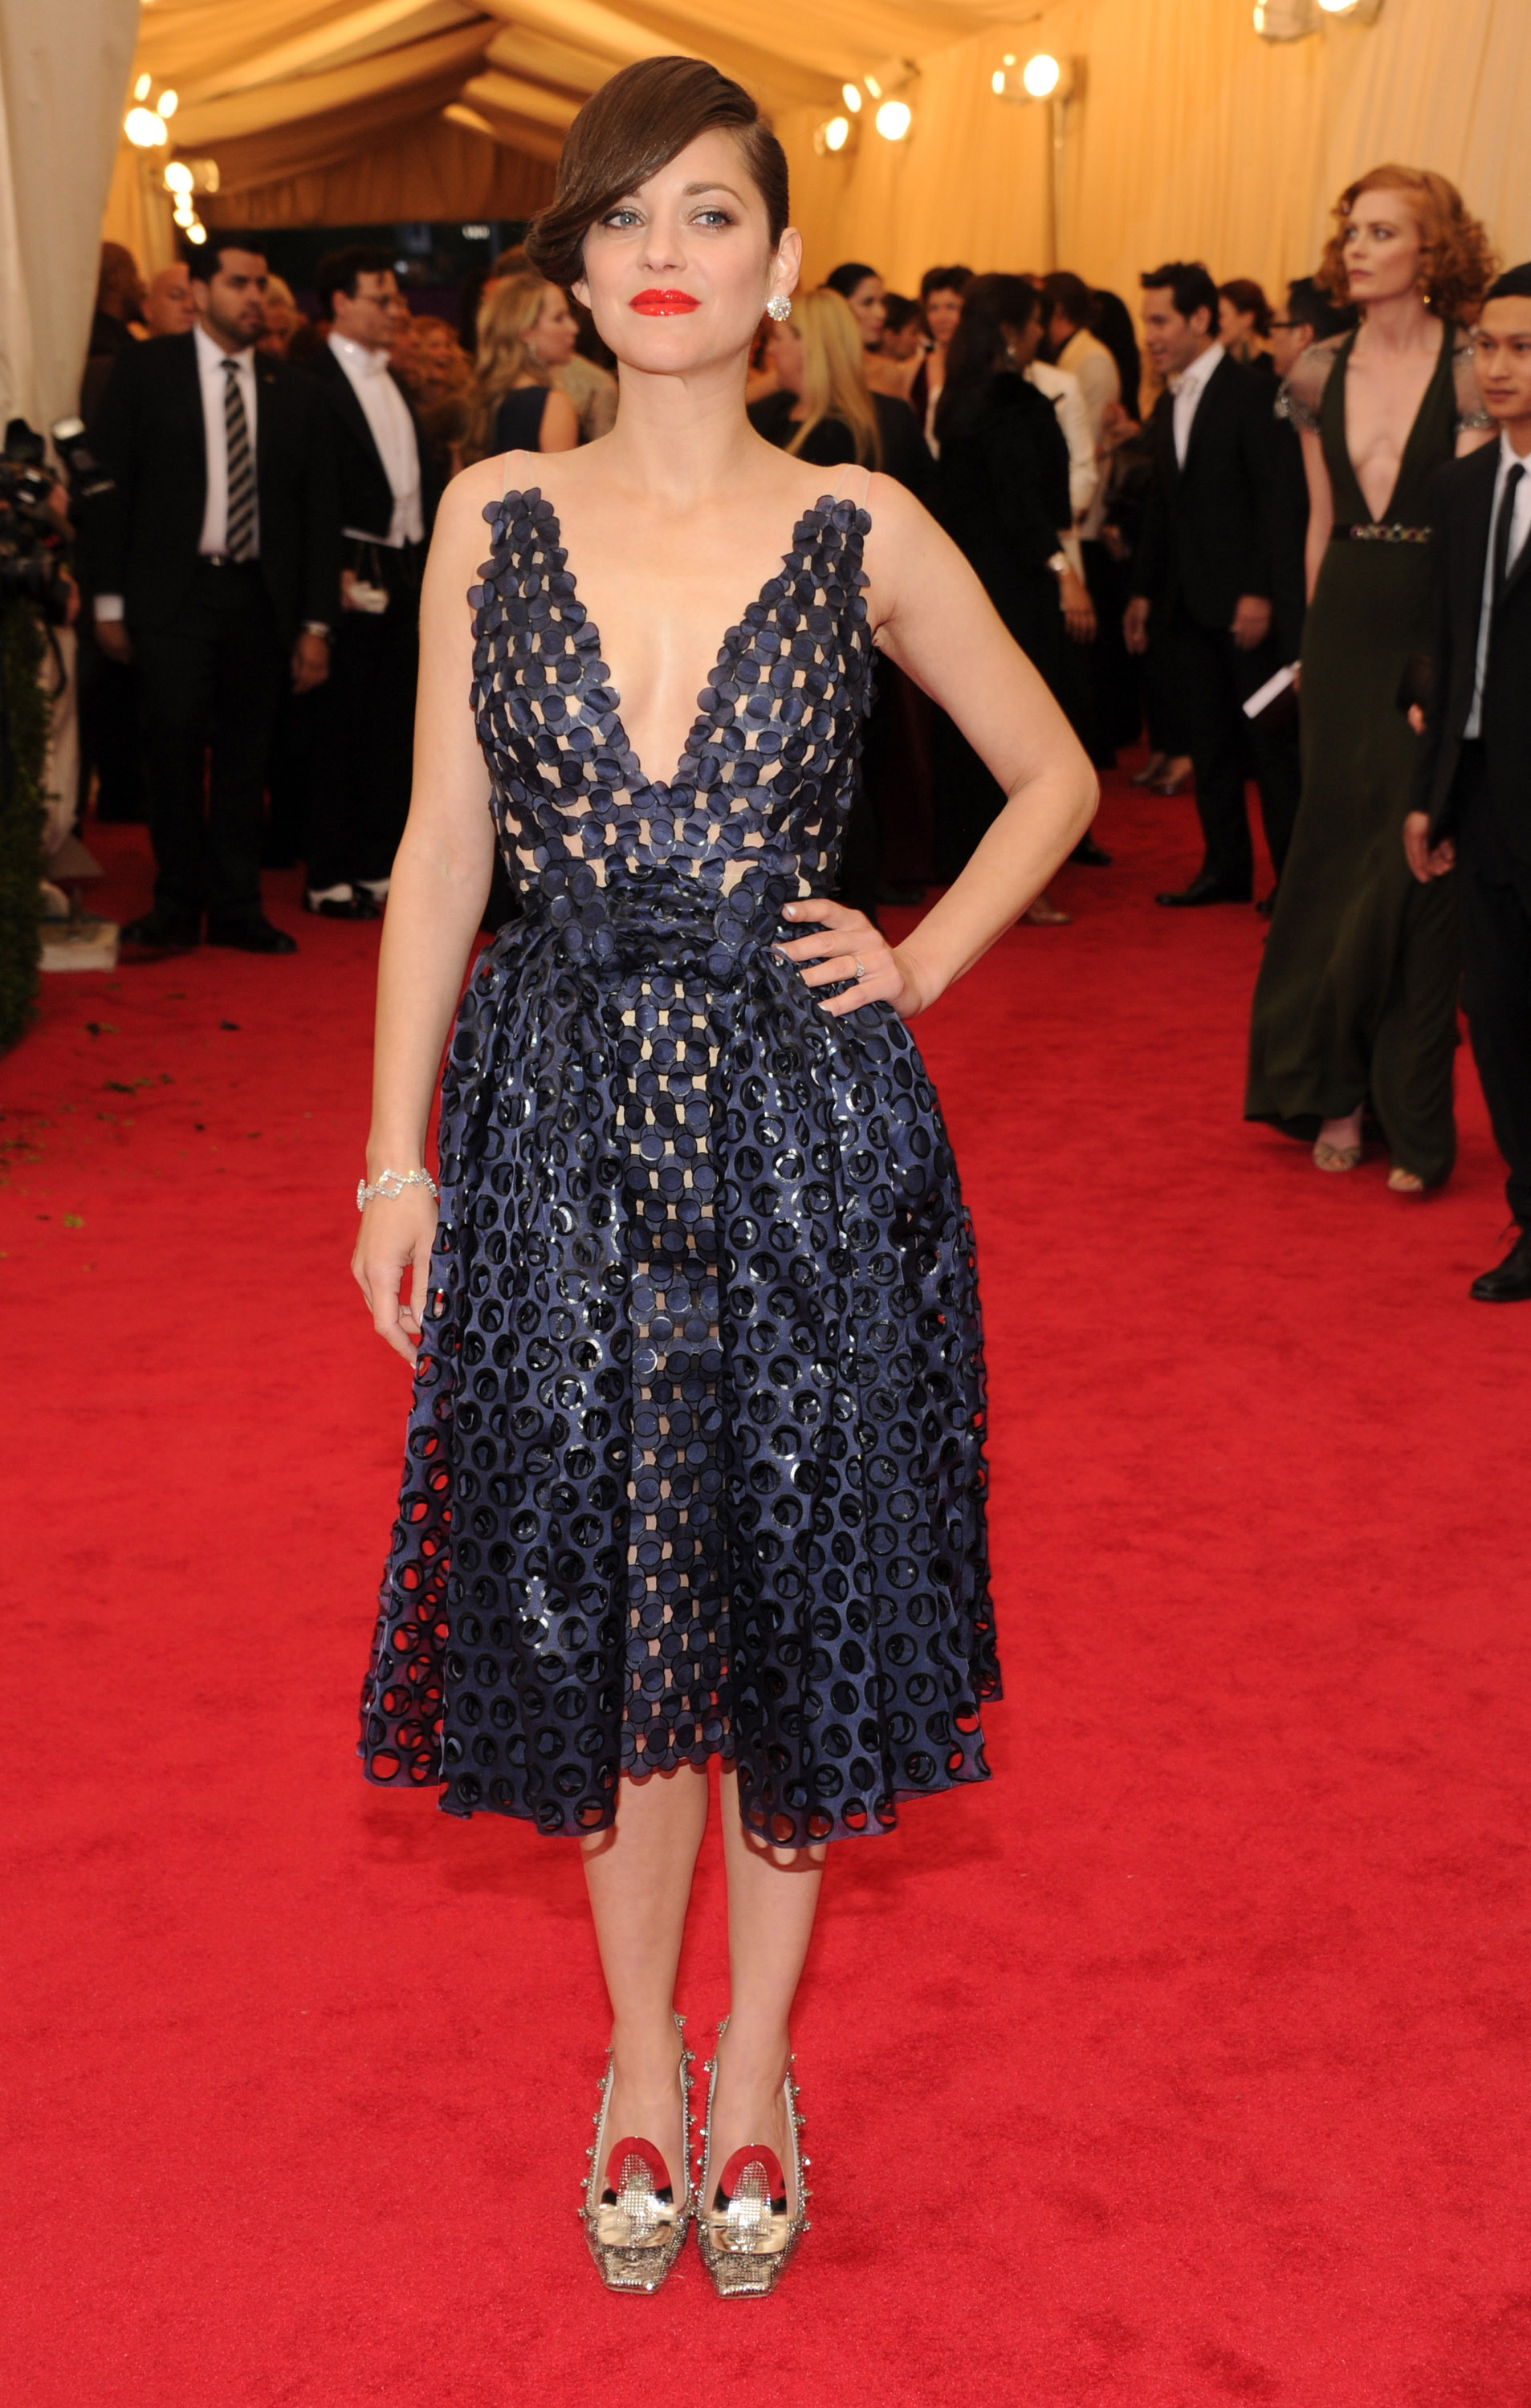 Marion Cottilard at the 2014 Met Gala